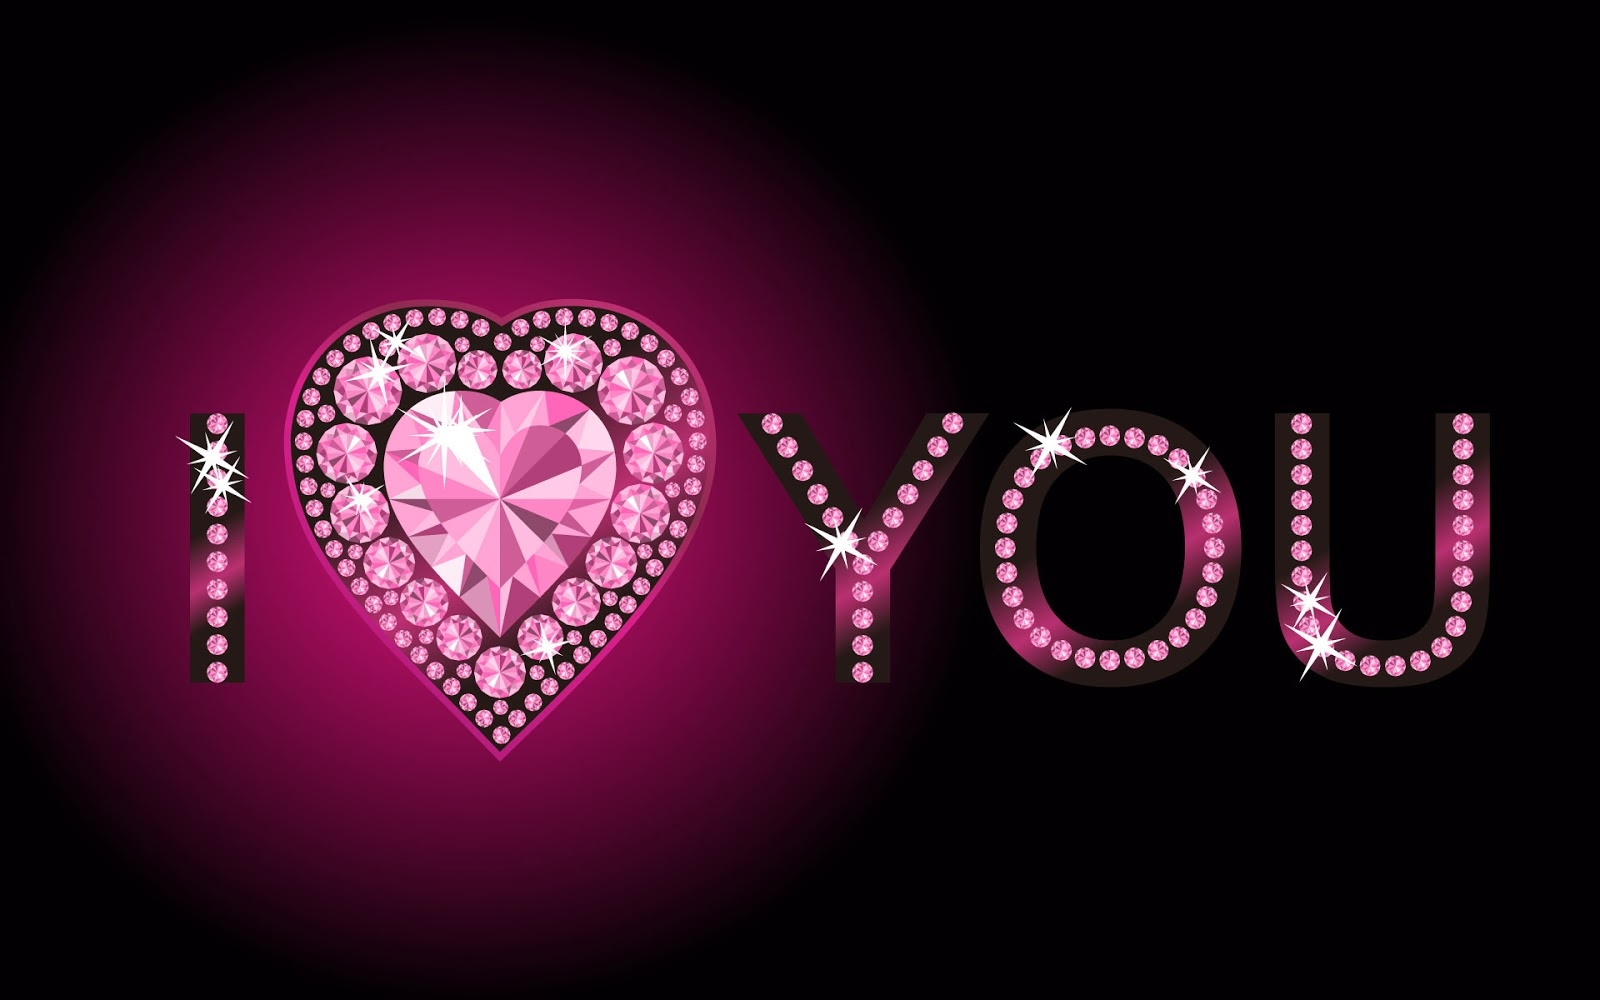 Best-different-images-of-i-love-you-I-Love-You-In-Different-Languages-Crafthubs-inside-Different-wallpaper-wp3803092